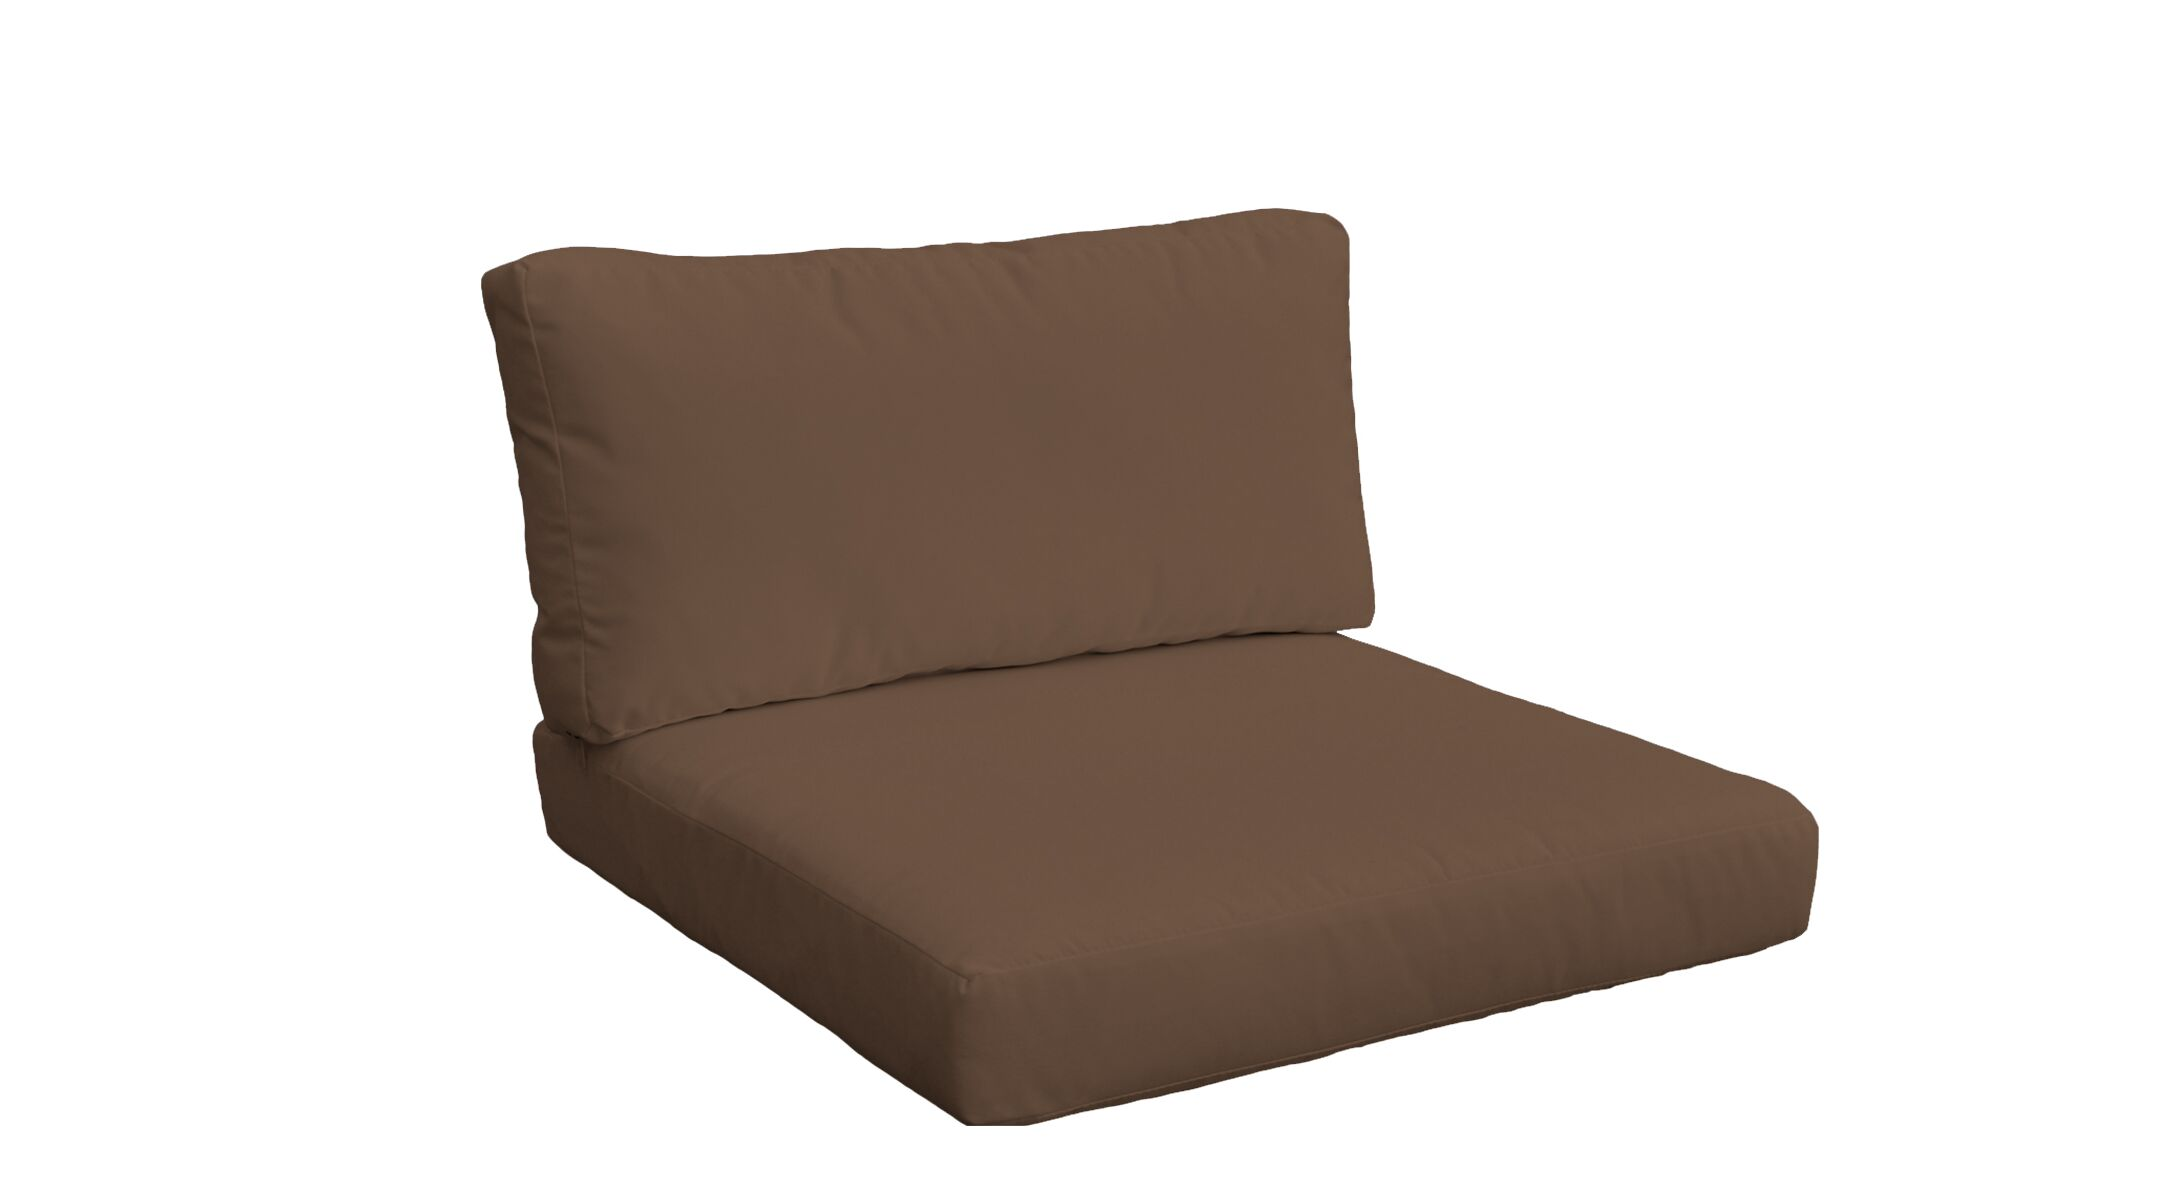 Belle 4 Piece Outdoor Lounge Chair Cushion Set Fabric: Cocoa